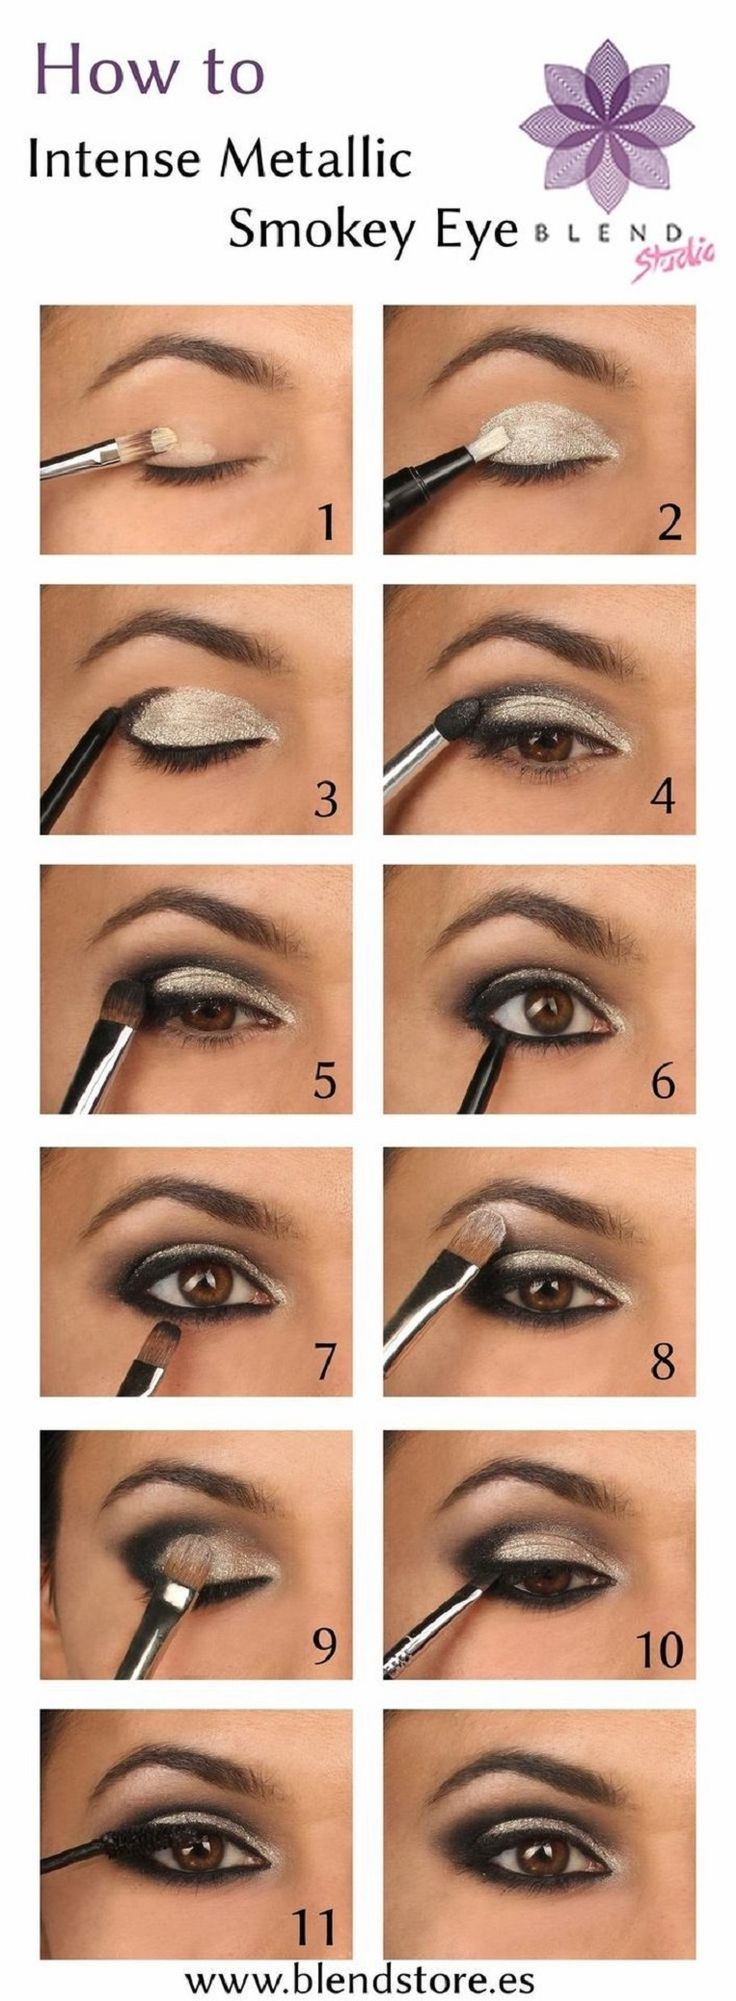 DIY Intense Metallic Smokey Eye - 15 Best Beauty Tutorials for Winter 2014-2015 | GleamItUp